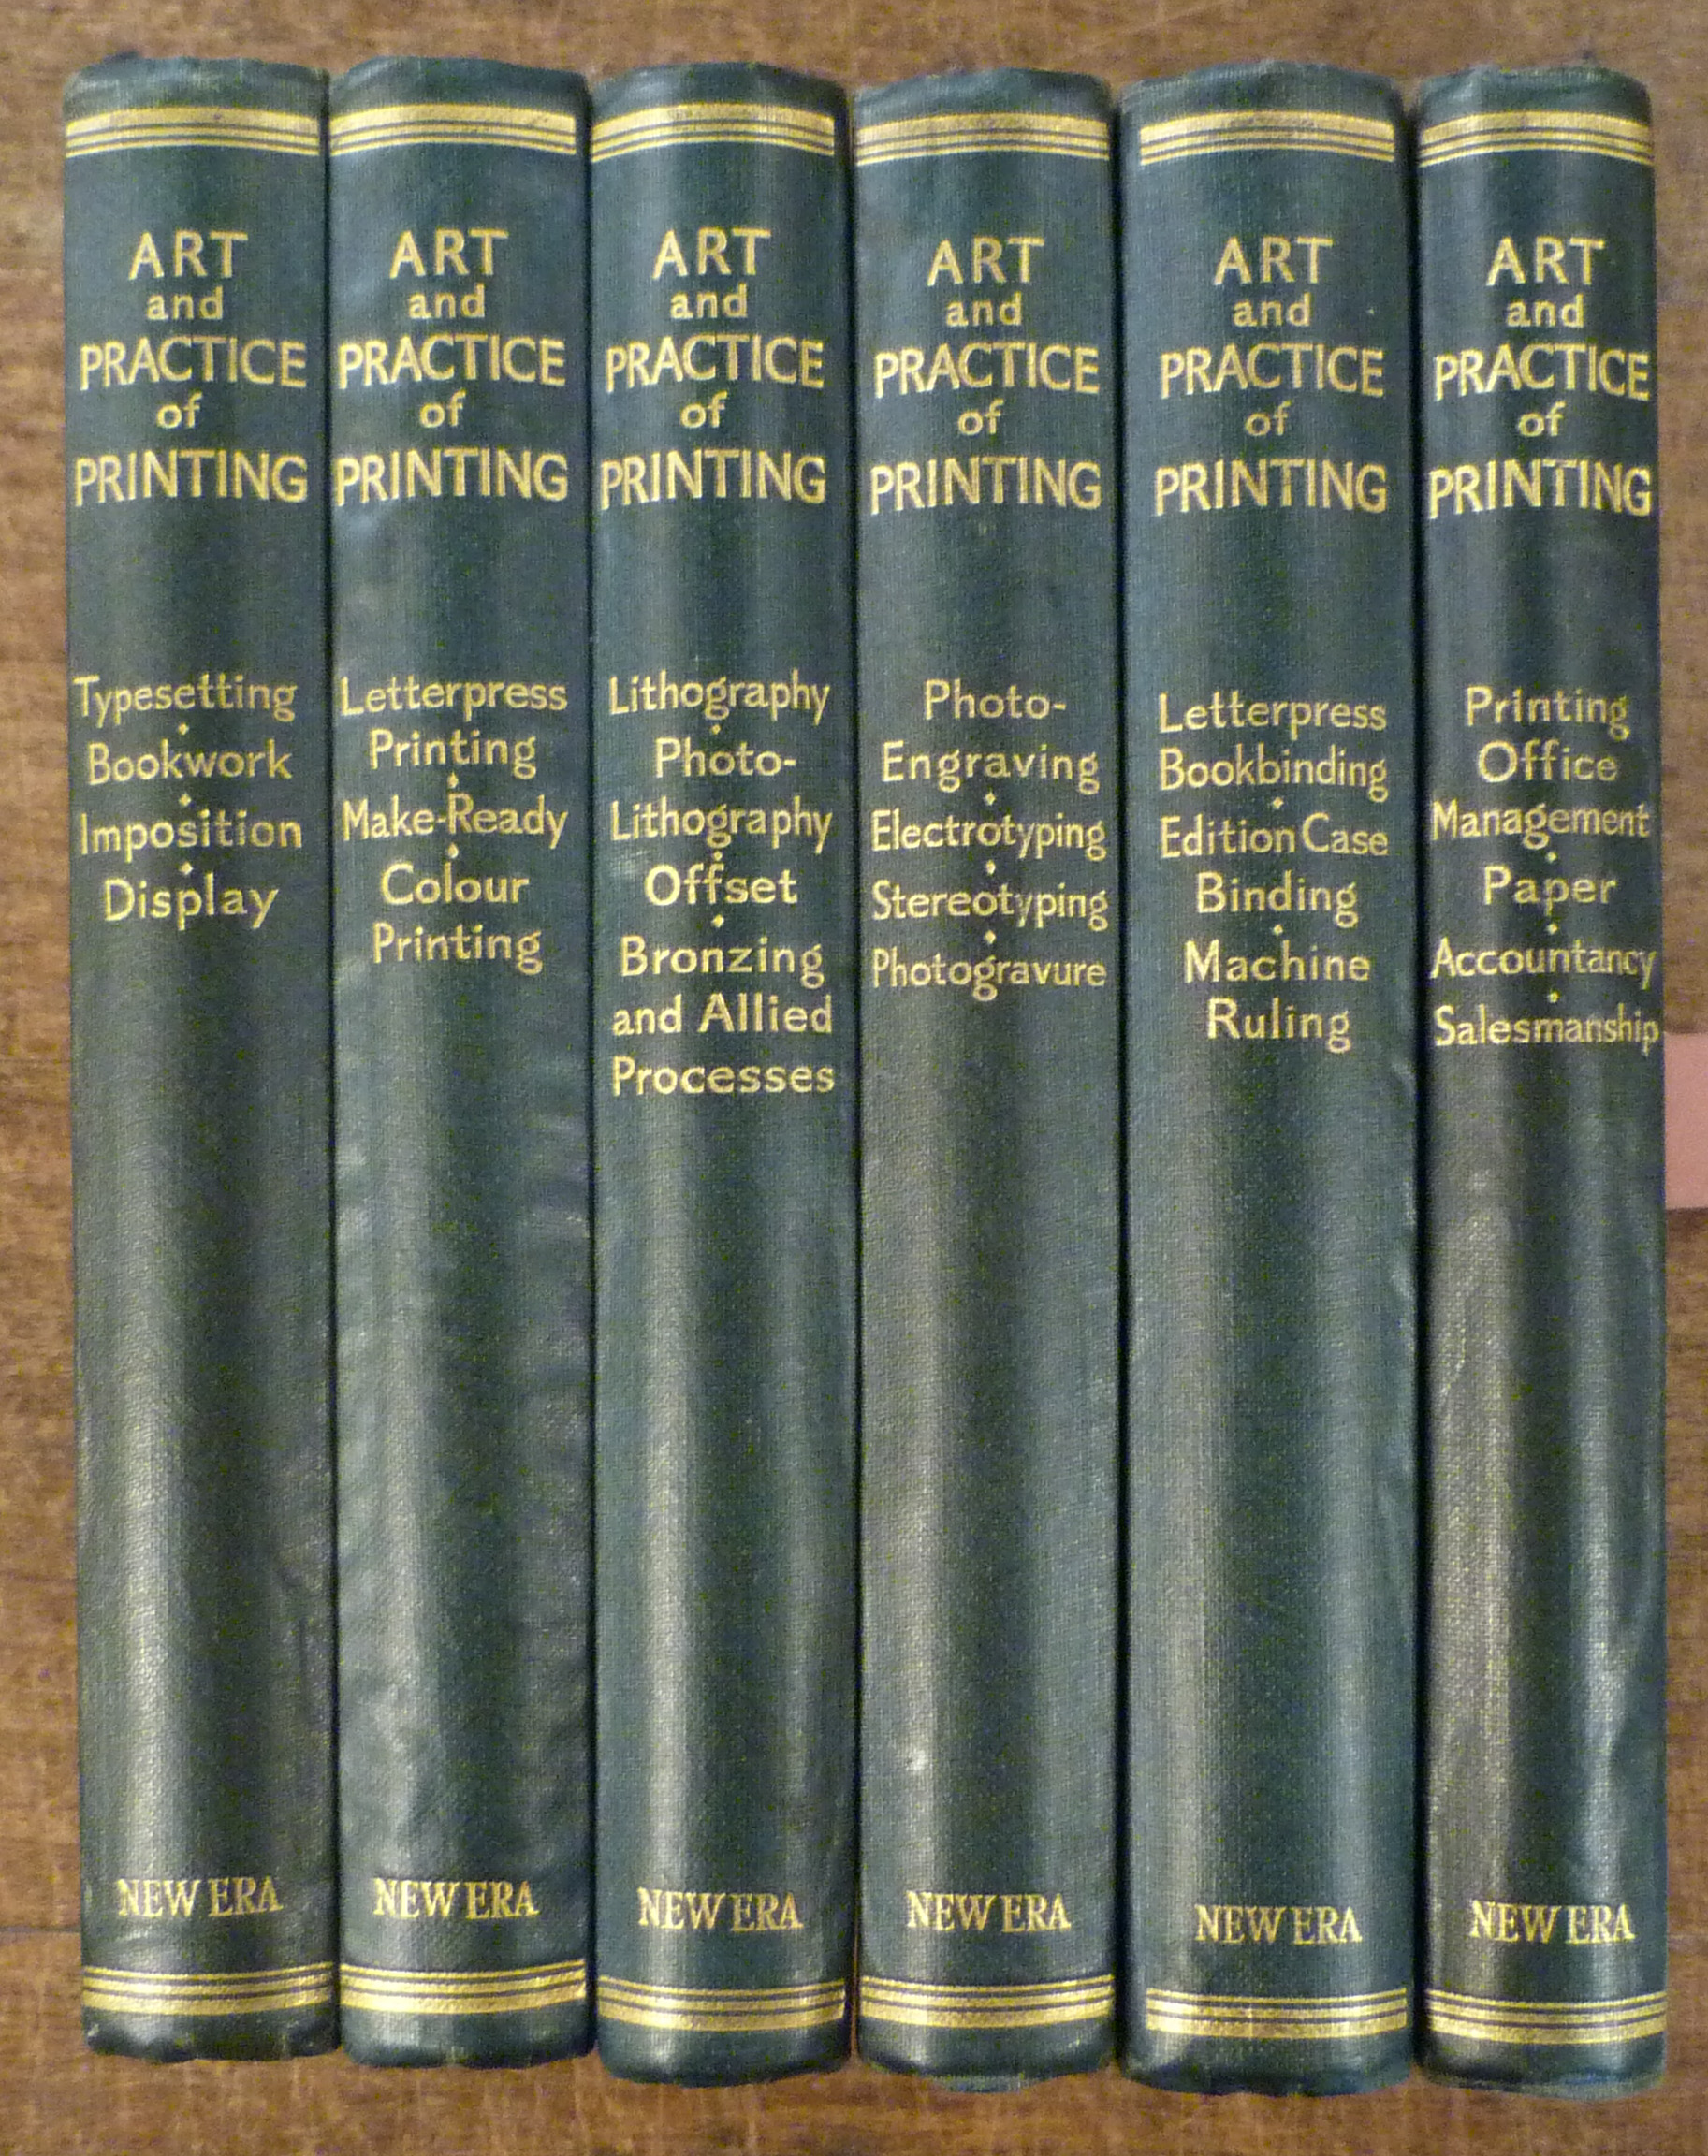 Image for The Art and Practice of Printing - a Work in Six Volumes - Dealing with the Composing Department, Mechanical Composition, Letterpress Printing in all . Printing, Direct and Offset, and Photo Litho, Etc. 6 Volumes Complete I[The Composing Department] II [L